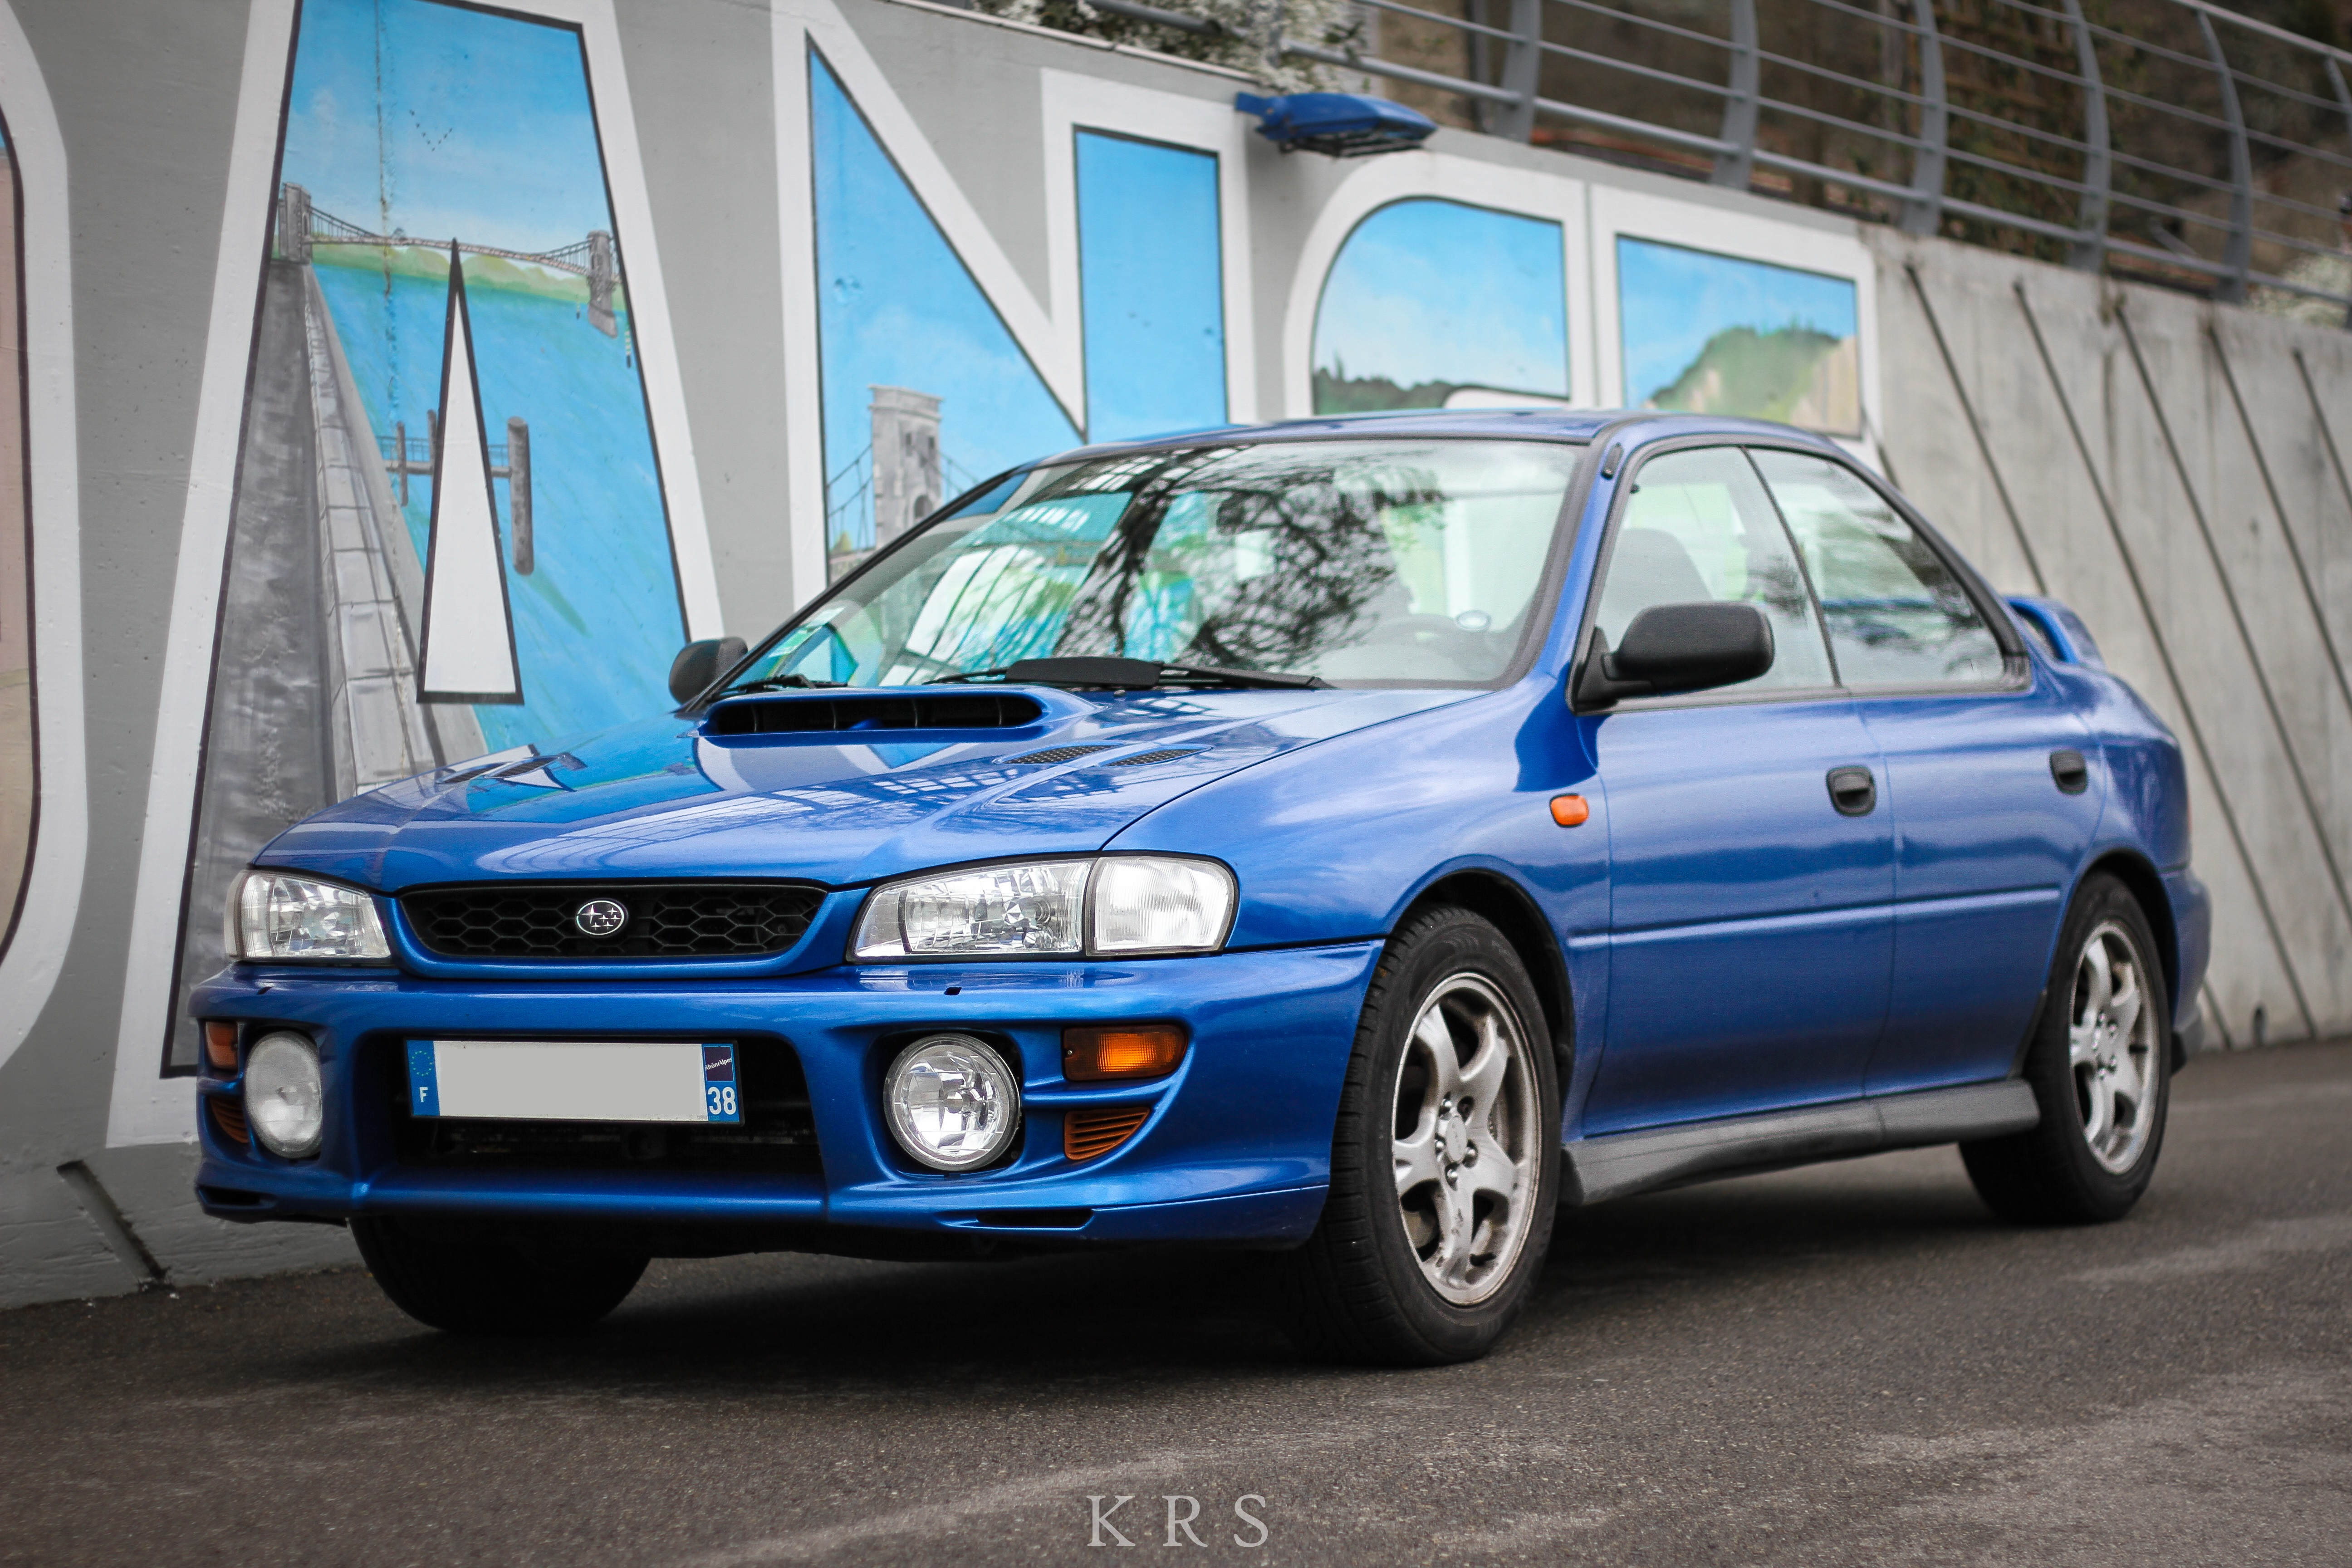 Im Kevin New Here Heres My Stock 99 Subaru Impreza GT 217hp I Love Her Hope You Too If Want To Check Or Friends One